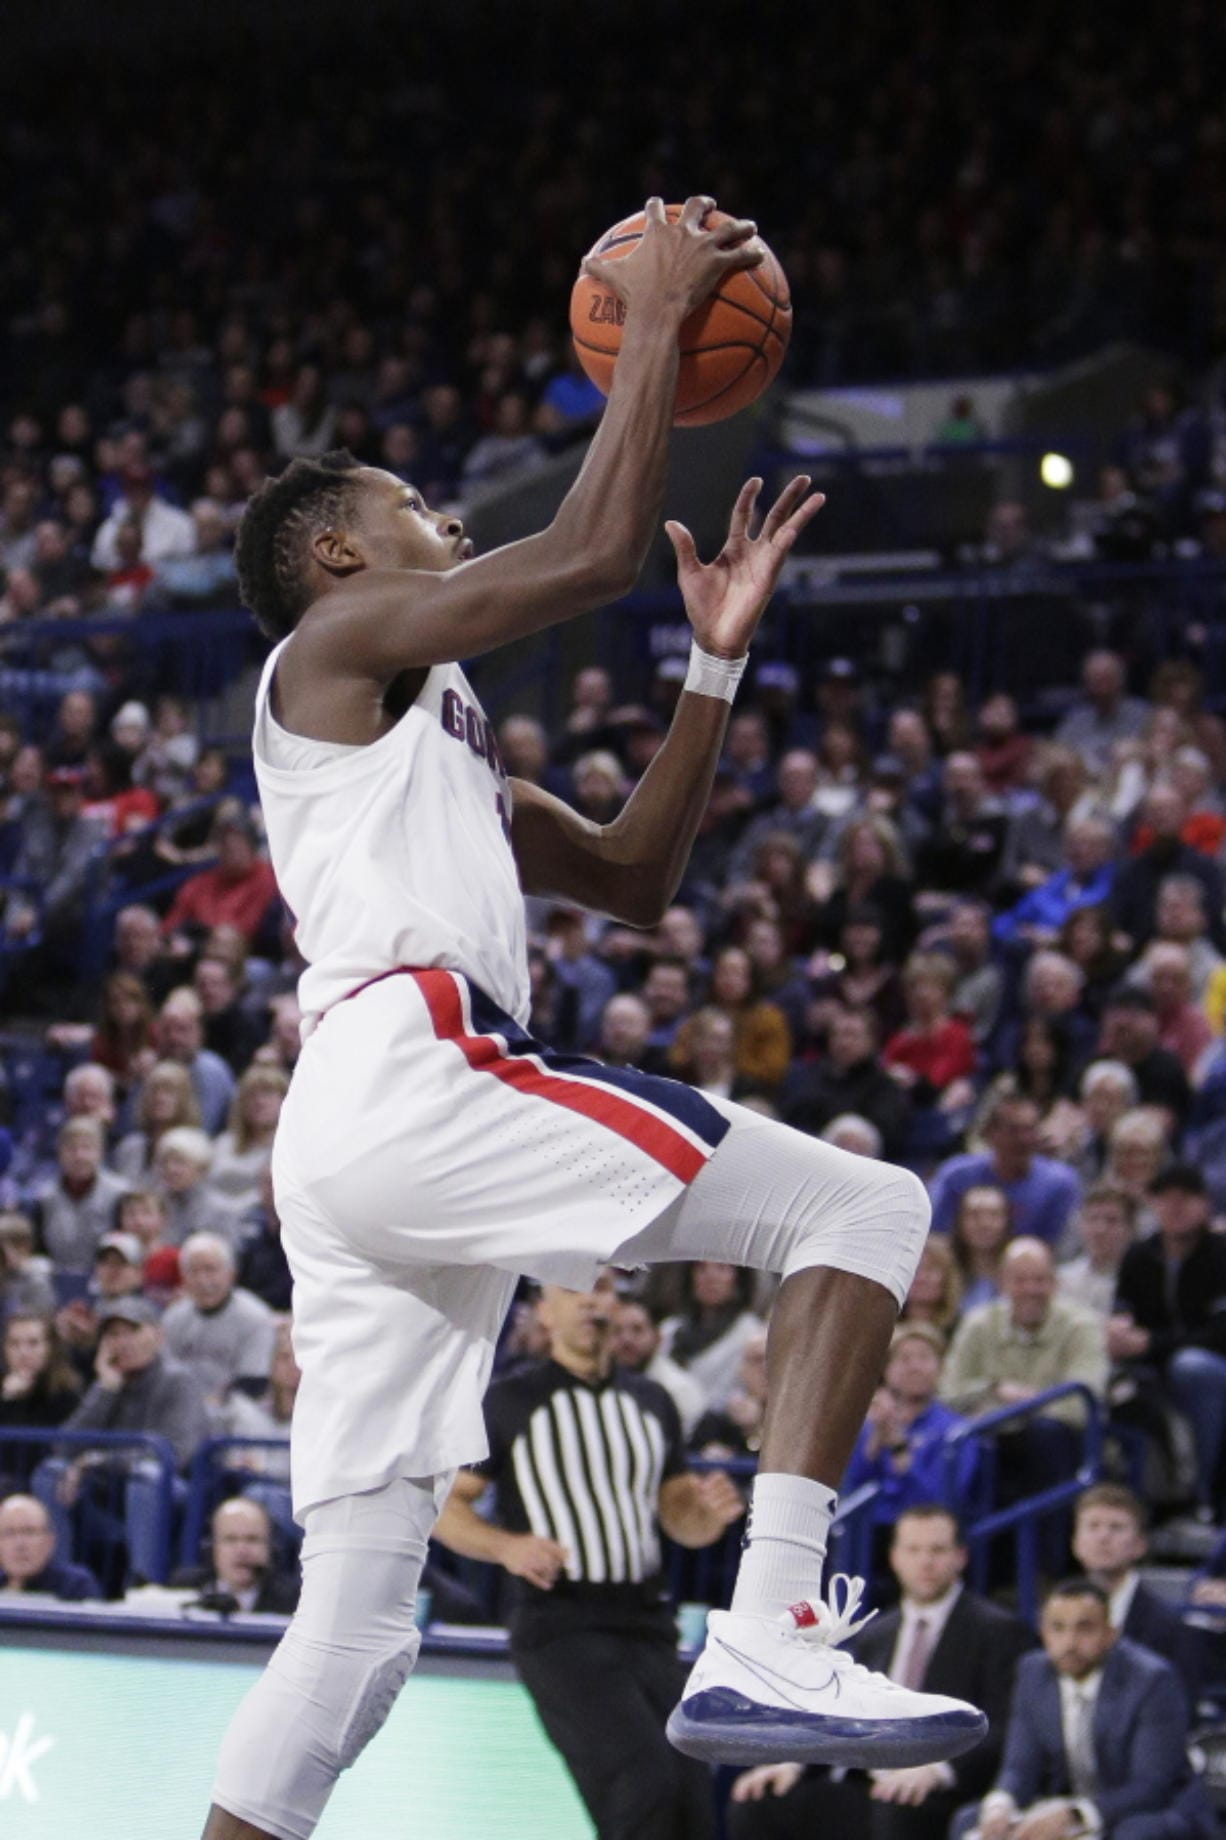 Gonzaga guard Joel Ayayi goes up for a layup during the first half of the team's NCAA college basketball game against Santa Clara in Spokane, Wash., Thursday, Jan. 16, 2020.